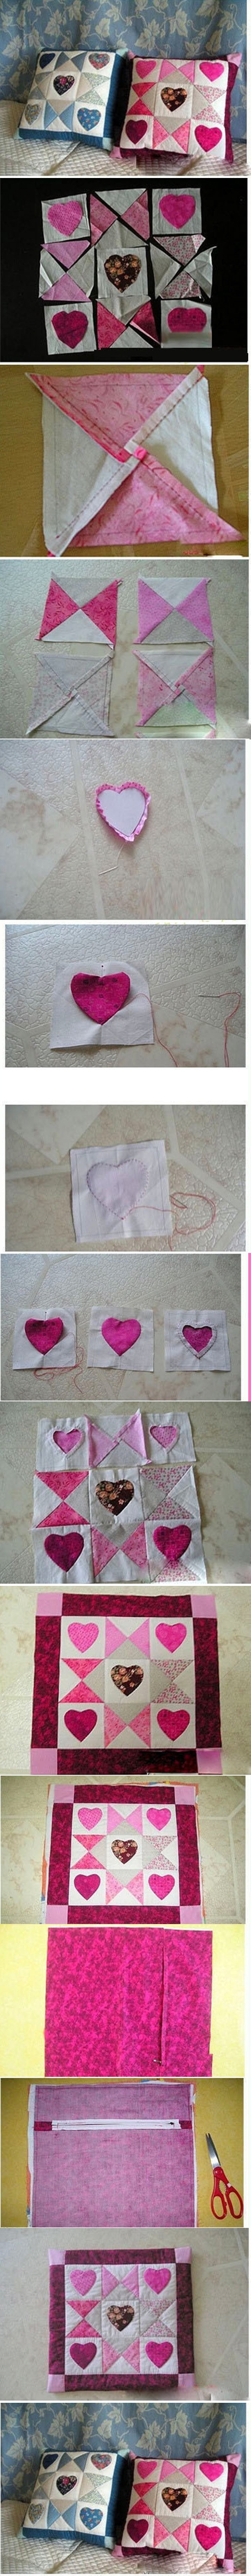 Heart Cushion M Wonderful DIY Heart Checker Cushion